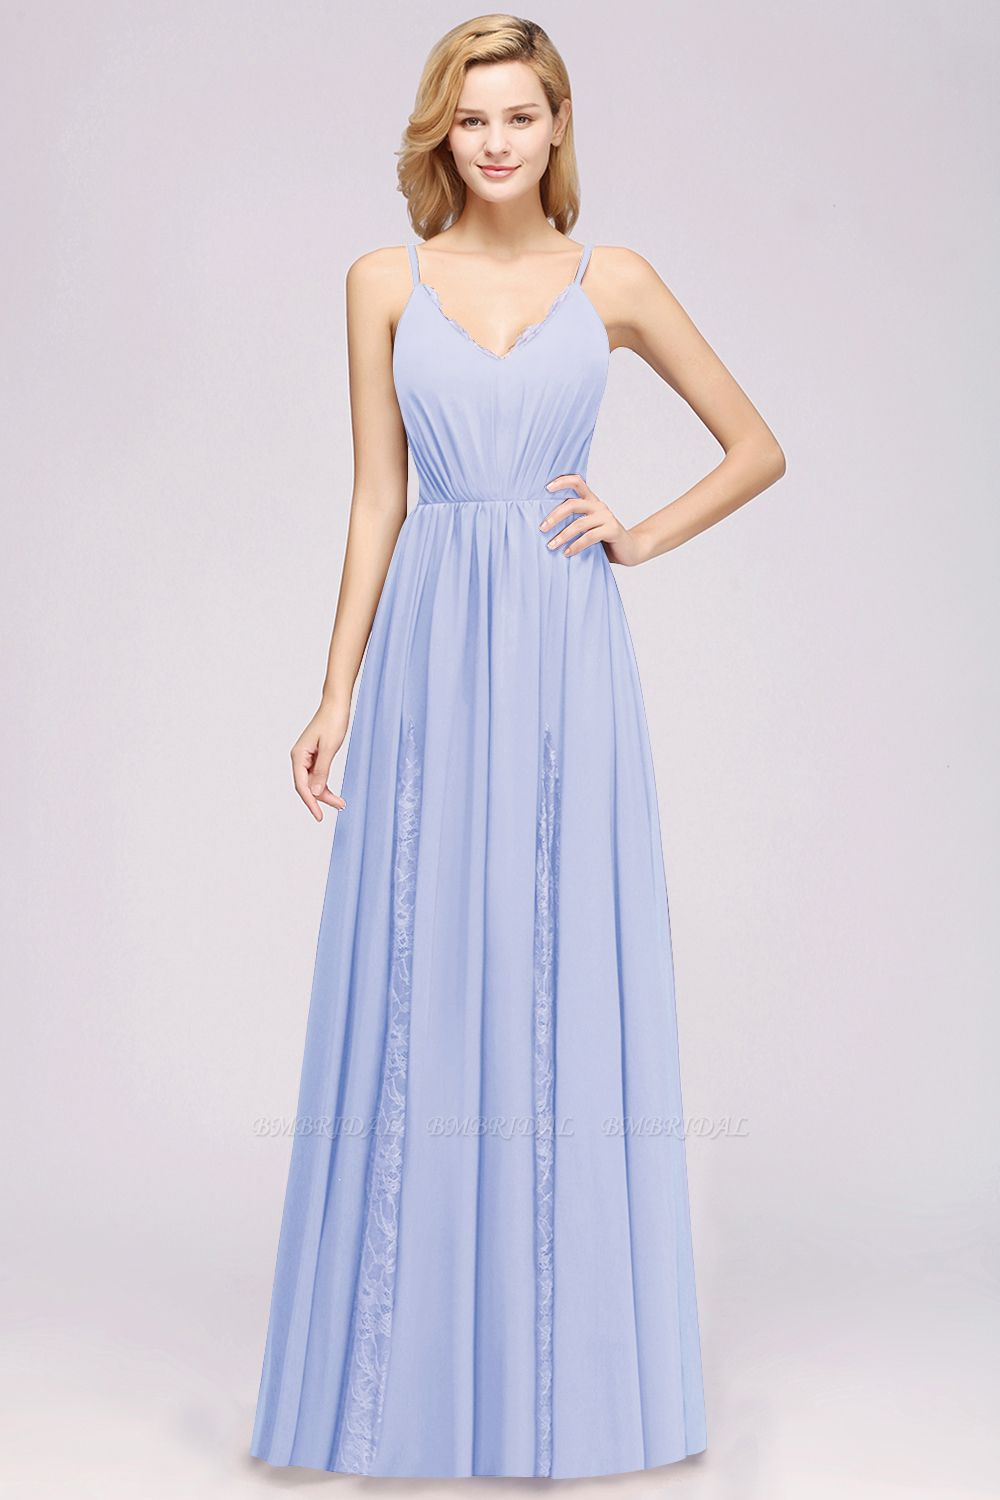 Elegant Spaghetti Straps Long Bridesmaid Dress Lace V-Neck Maid of Honor Dress